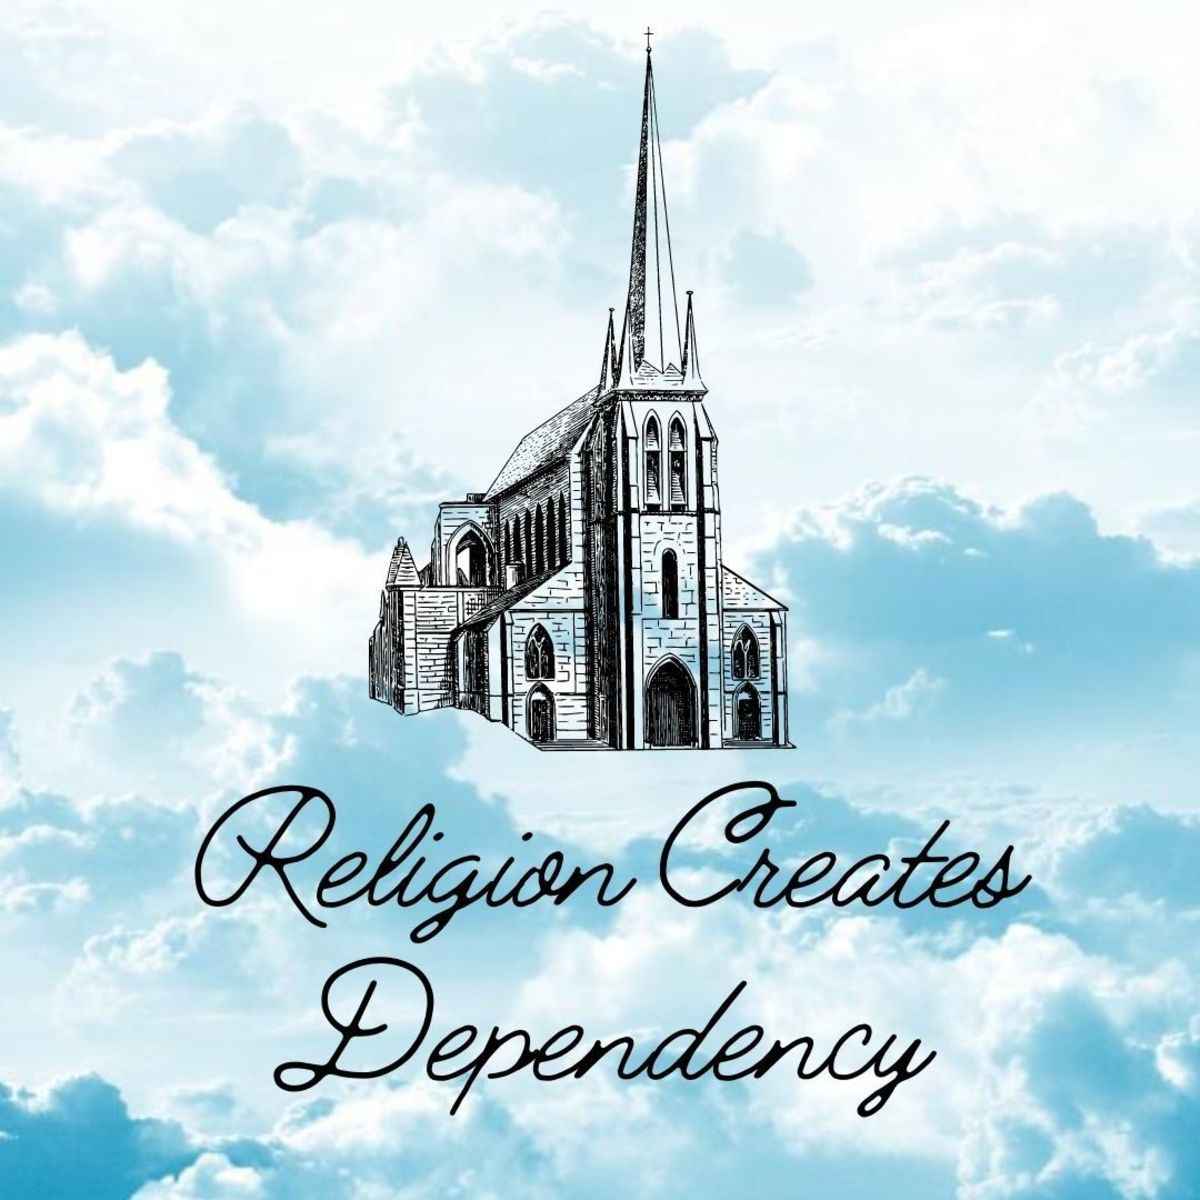 Religion creates dependency